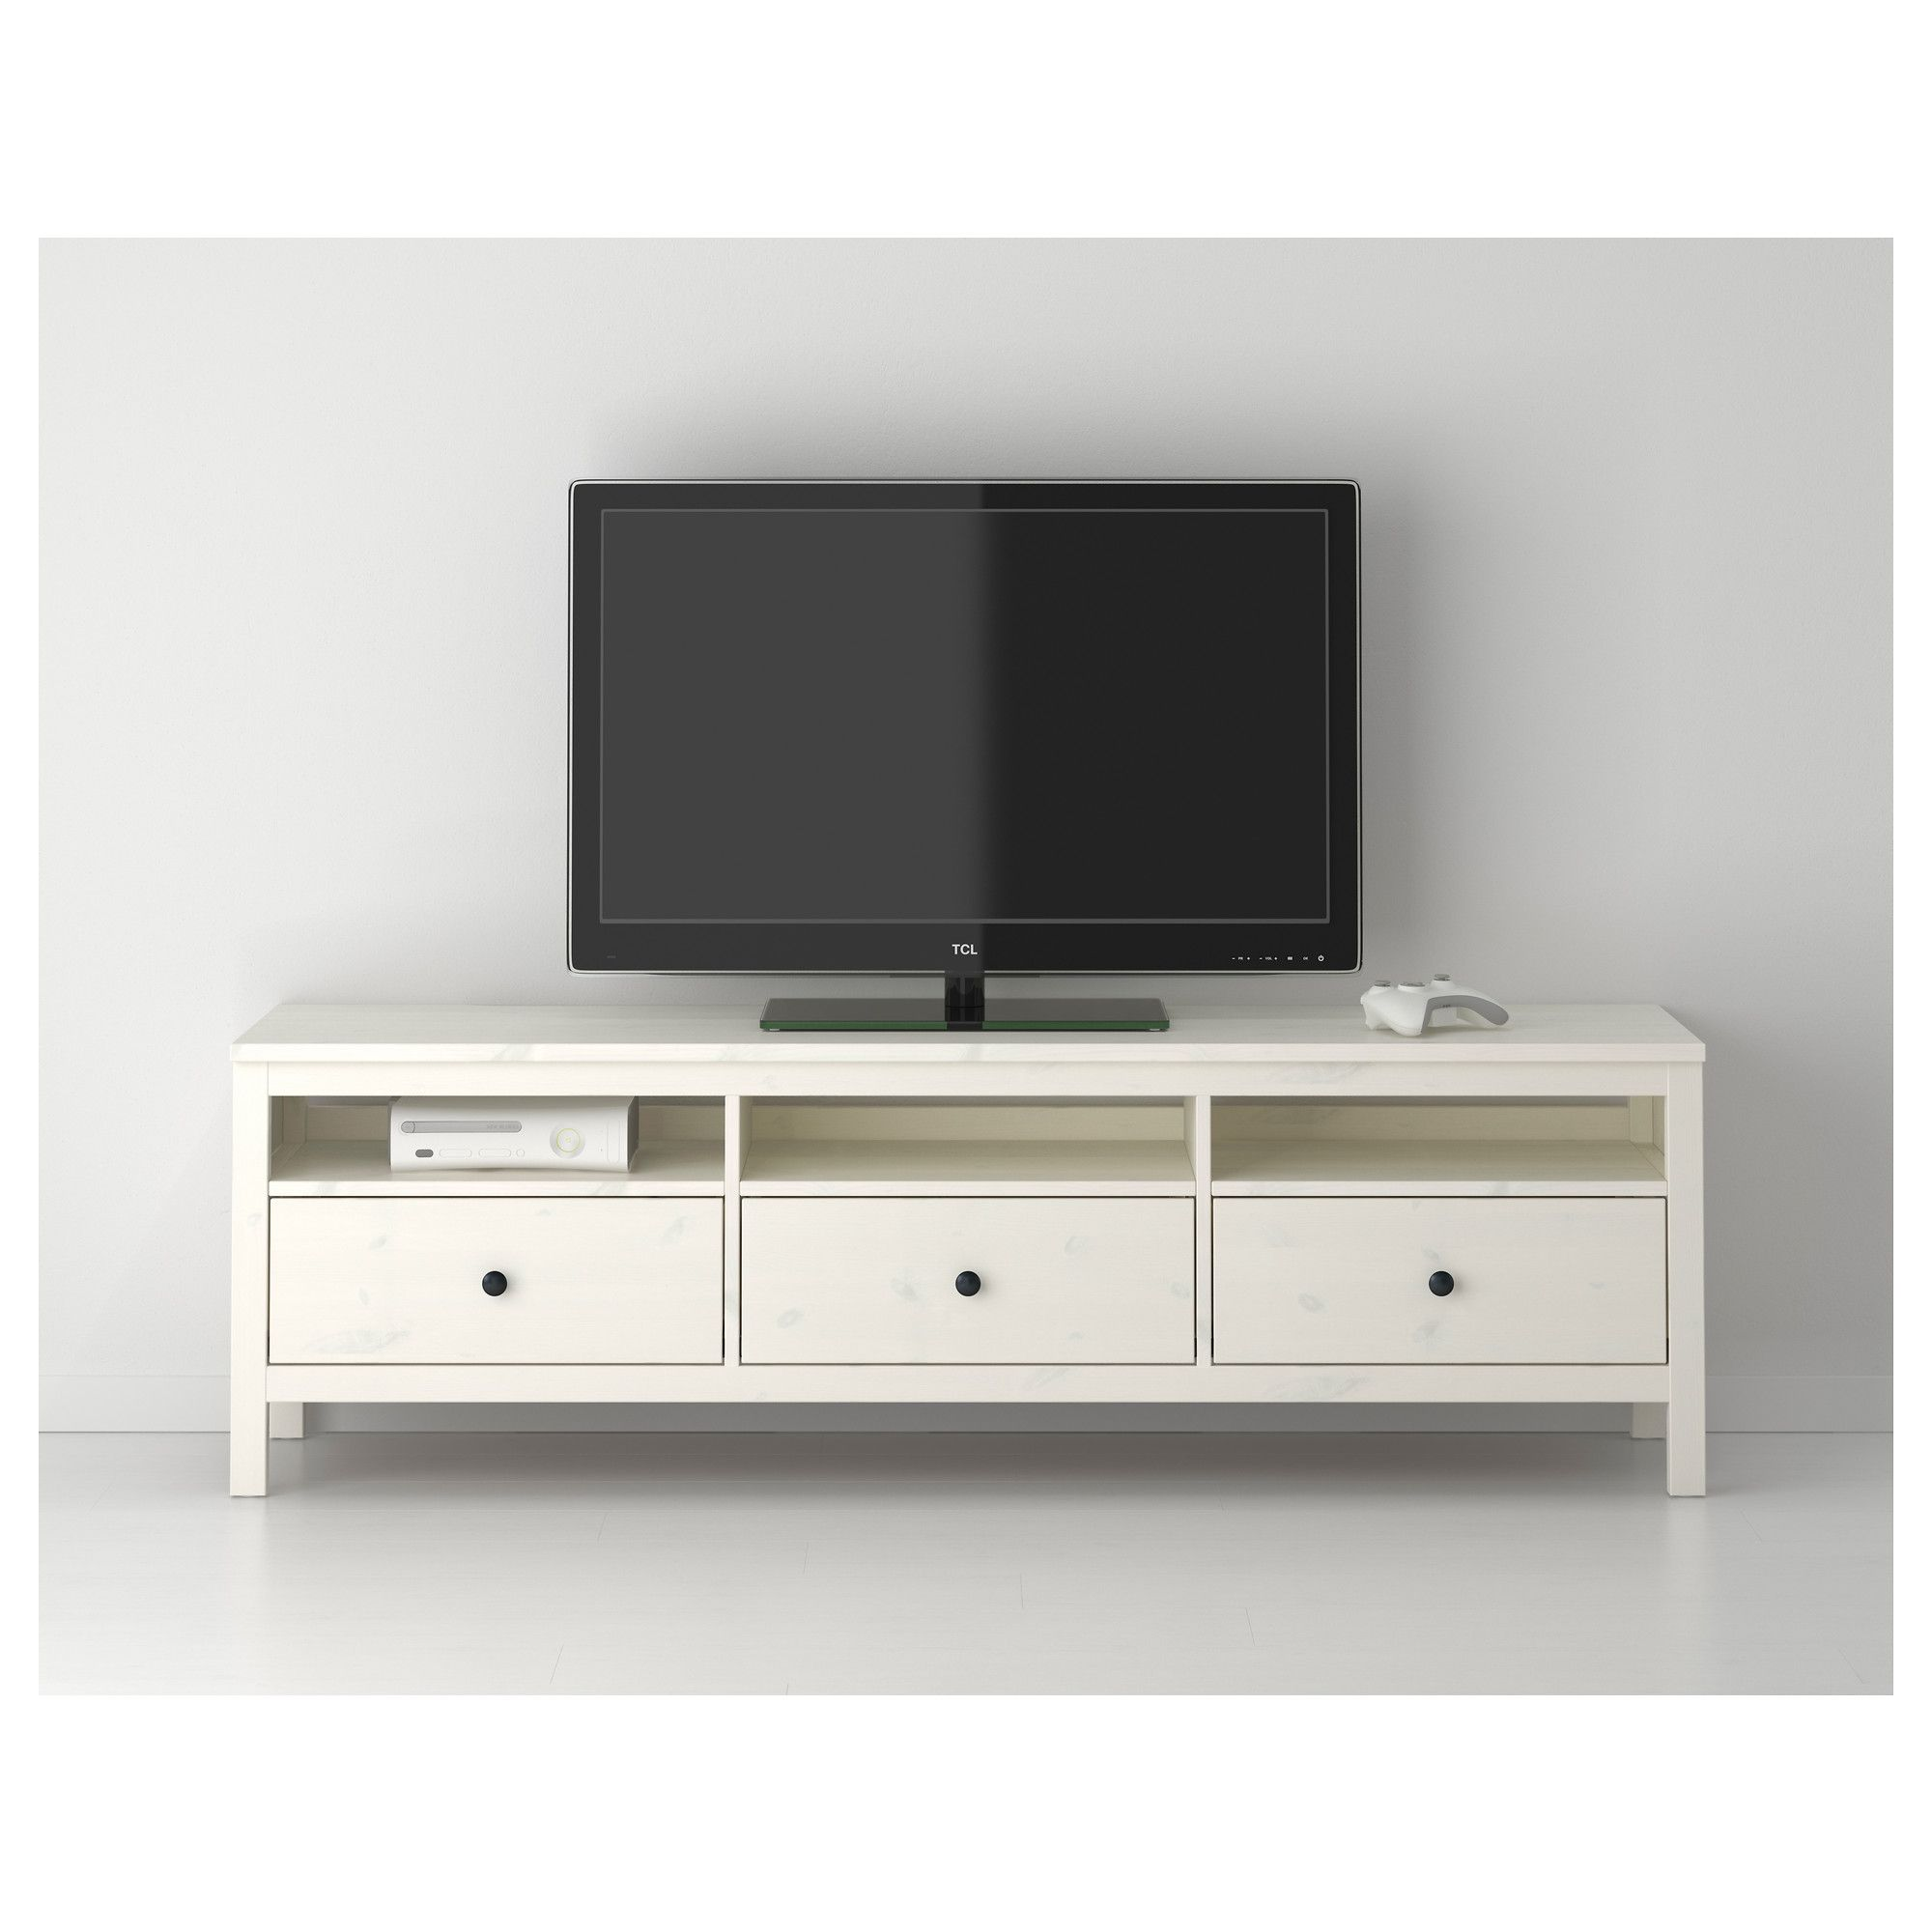 hemnes tv ikea redecoration pinterest hemnes tv bench and bench. Black Bedroom Furniture Sets. Home Design Ideas